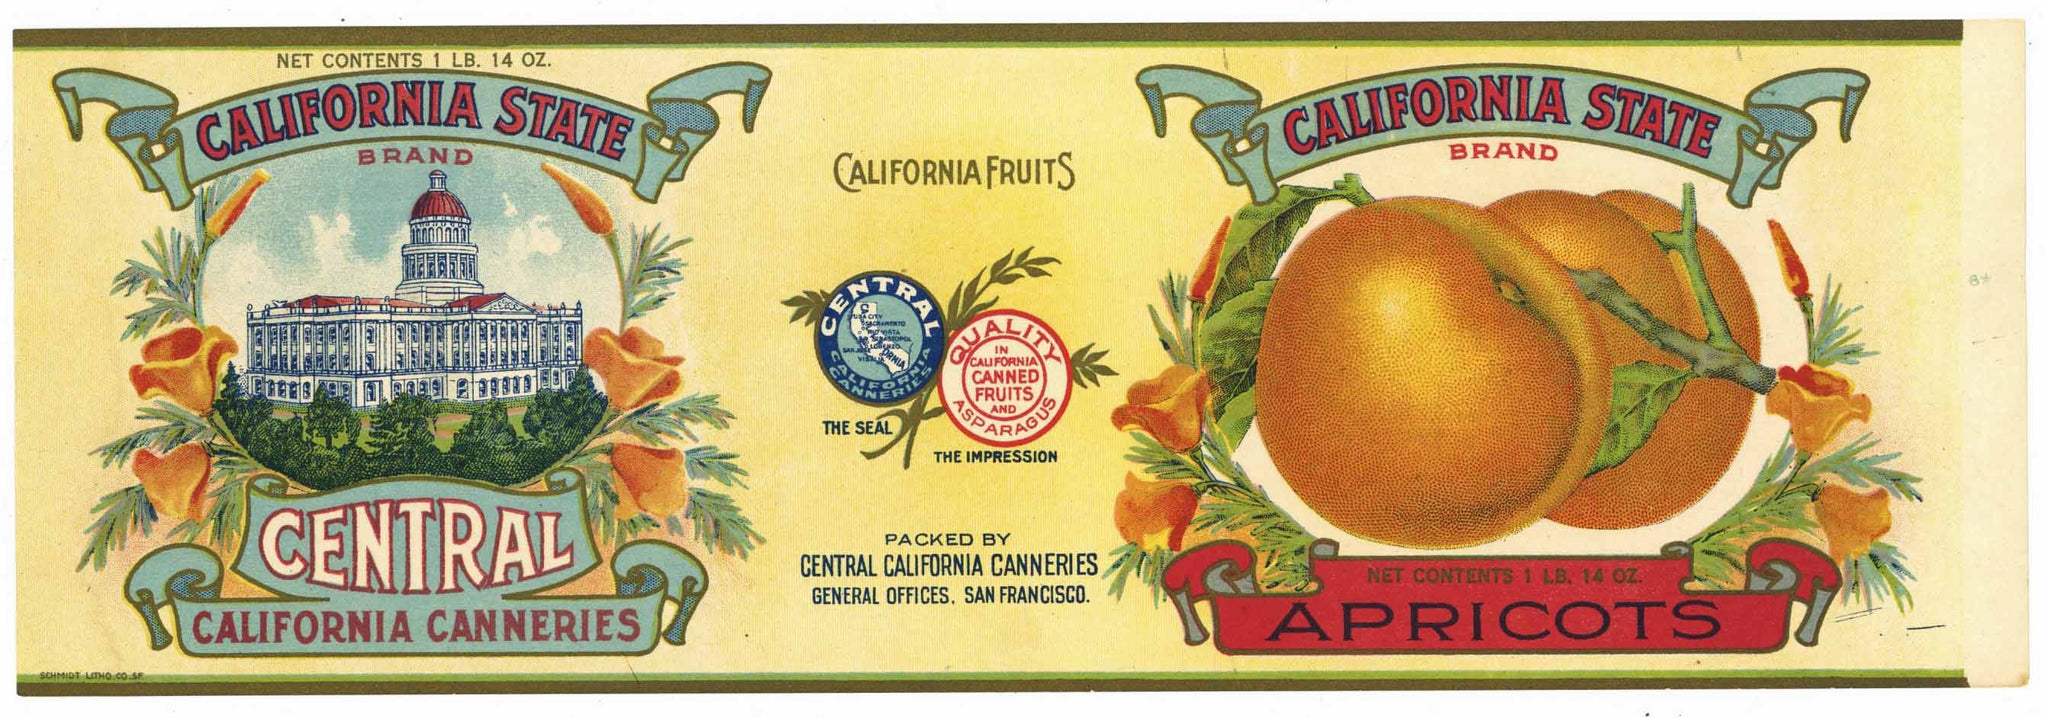 California State Brand Vintage Apricot Can Label, Capitol